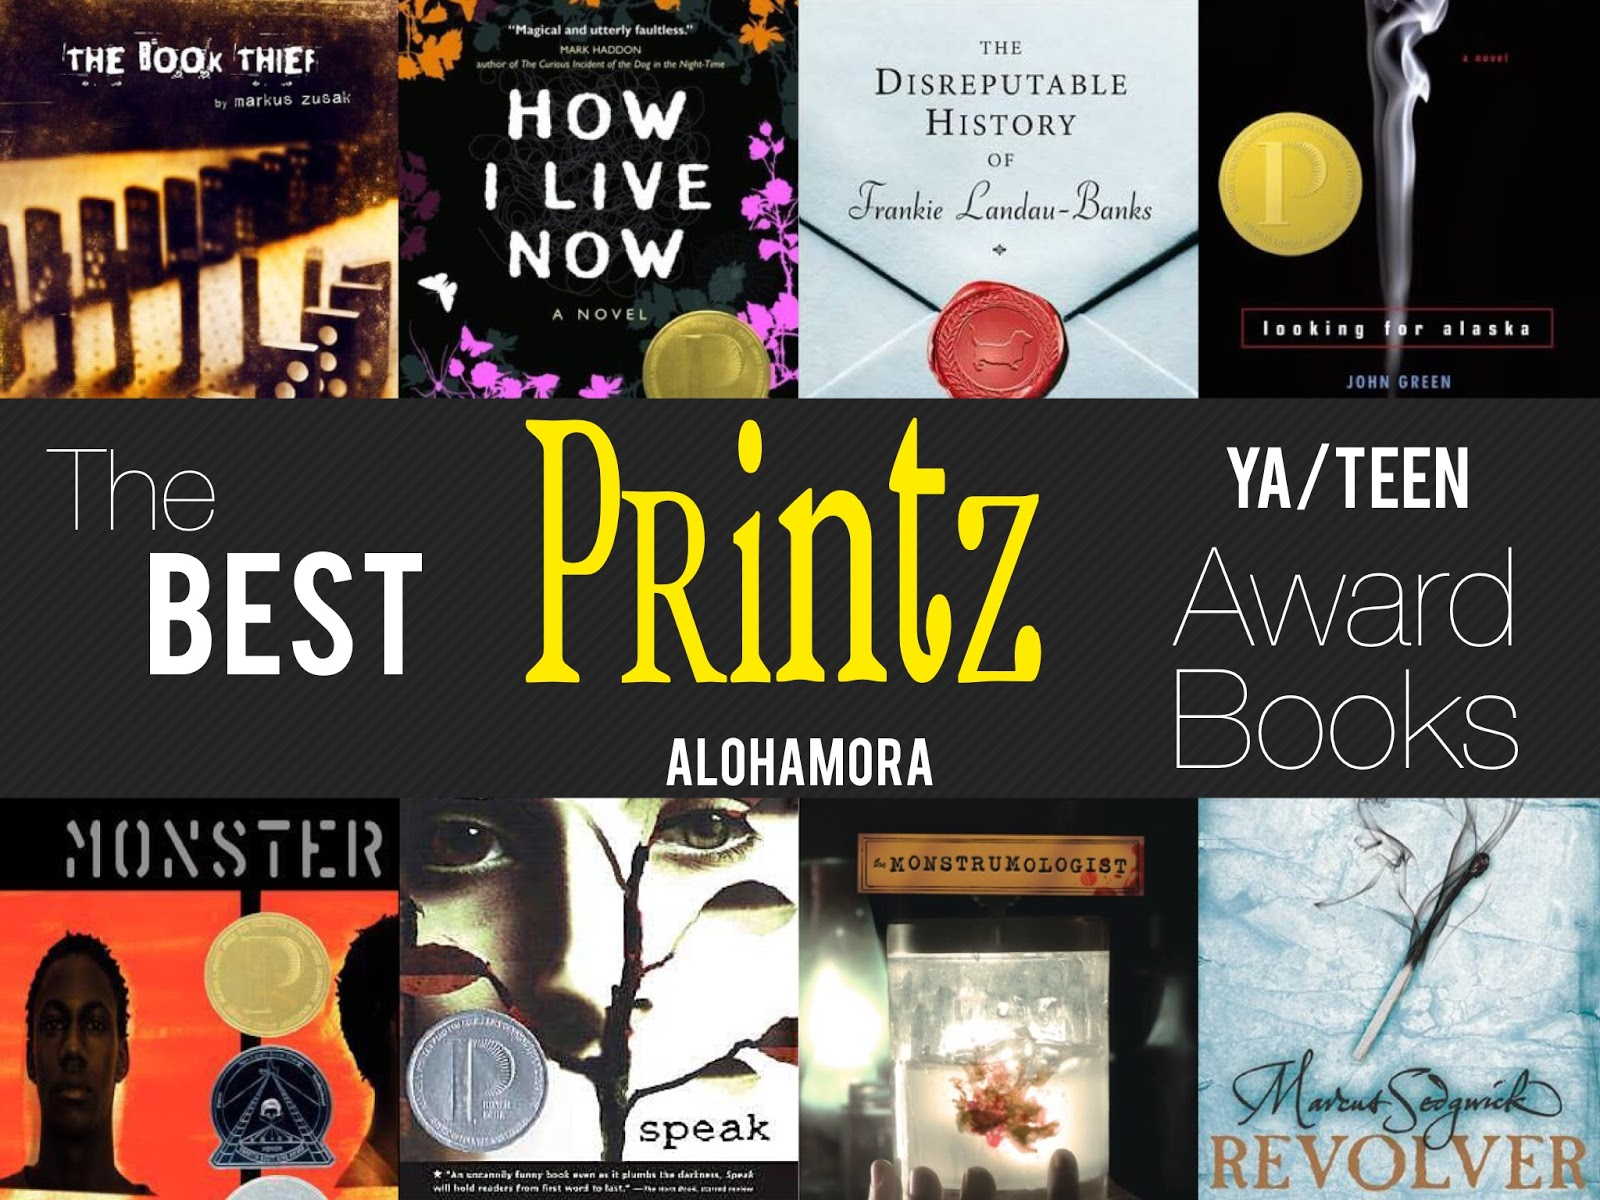 The 8 Best Printz Award Books. The Printz award is the best books for Teens/YA's (Young Adults).  These books are fabulous, with realistic fiction, horror, dramas, border school, girl power, boy books, and more.  Great reads boys and girls will enjoy! Alohamora Open a Book http://alohamoraopenabook.blogspot.com/